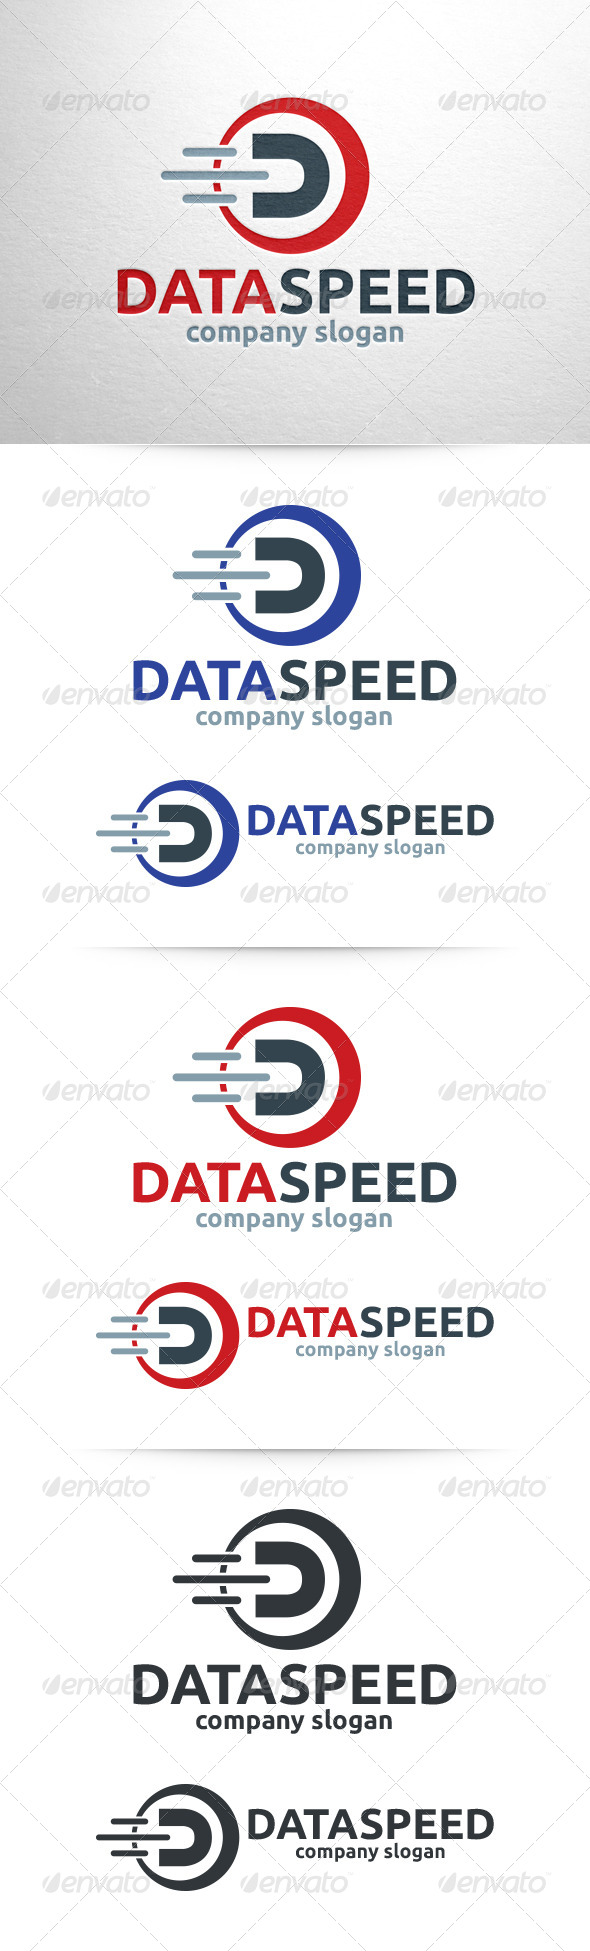 Data Speed - Letter D Logo